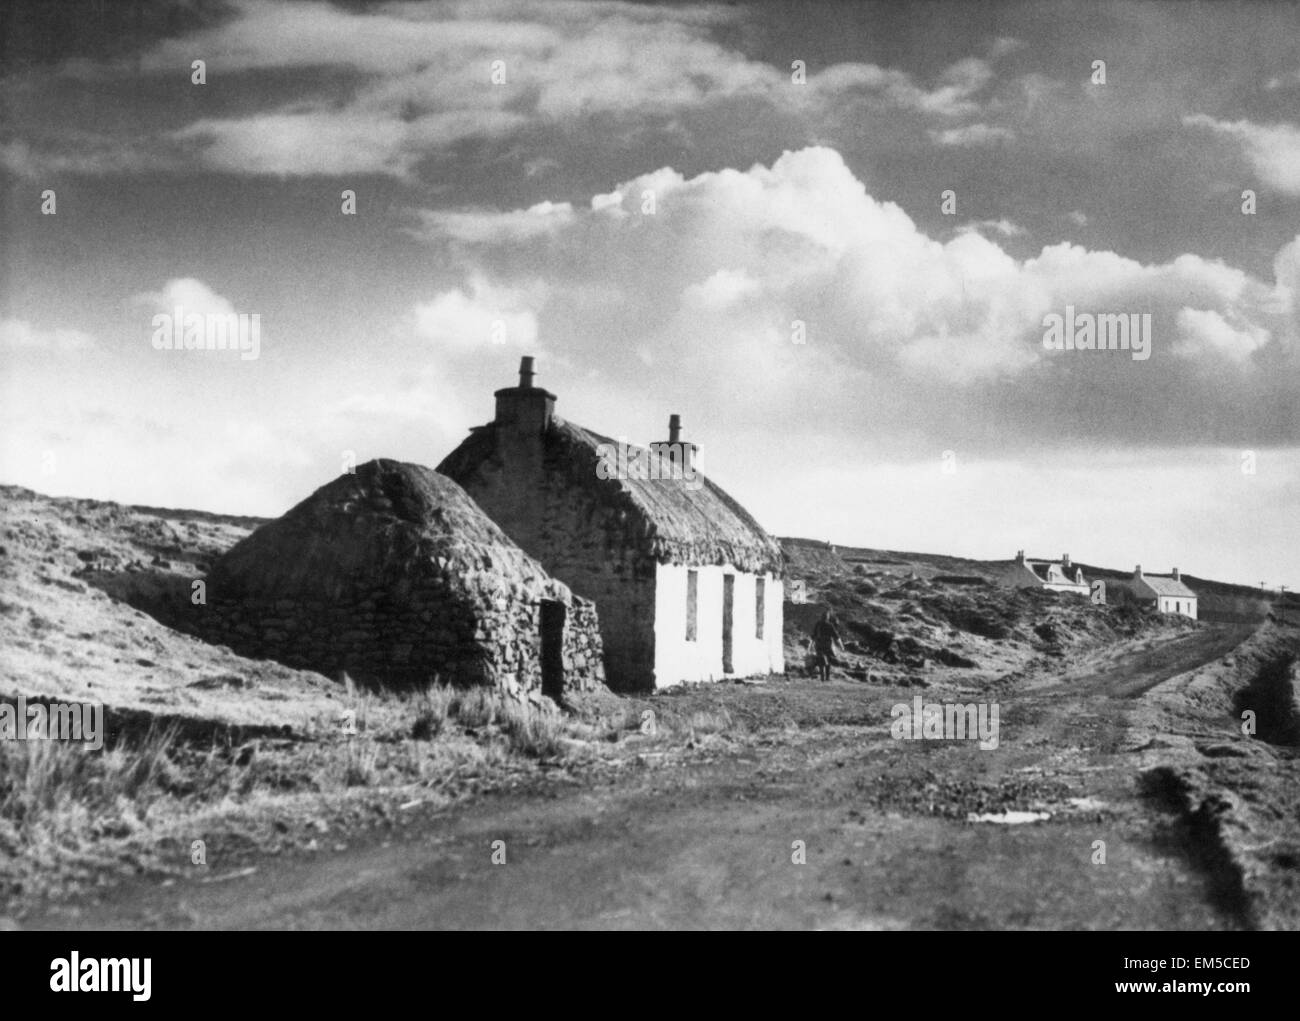 Near Dunvegan, Isle of Skye, Scotland, a typical view Housing Cottage Lane Thatched roof Clouds Scenic Country Scene - Stock Image